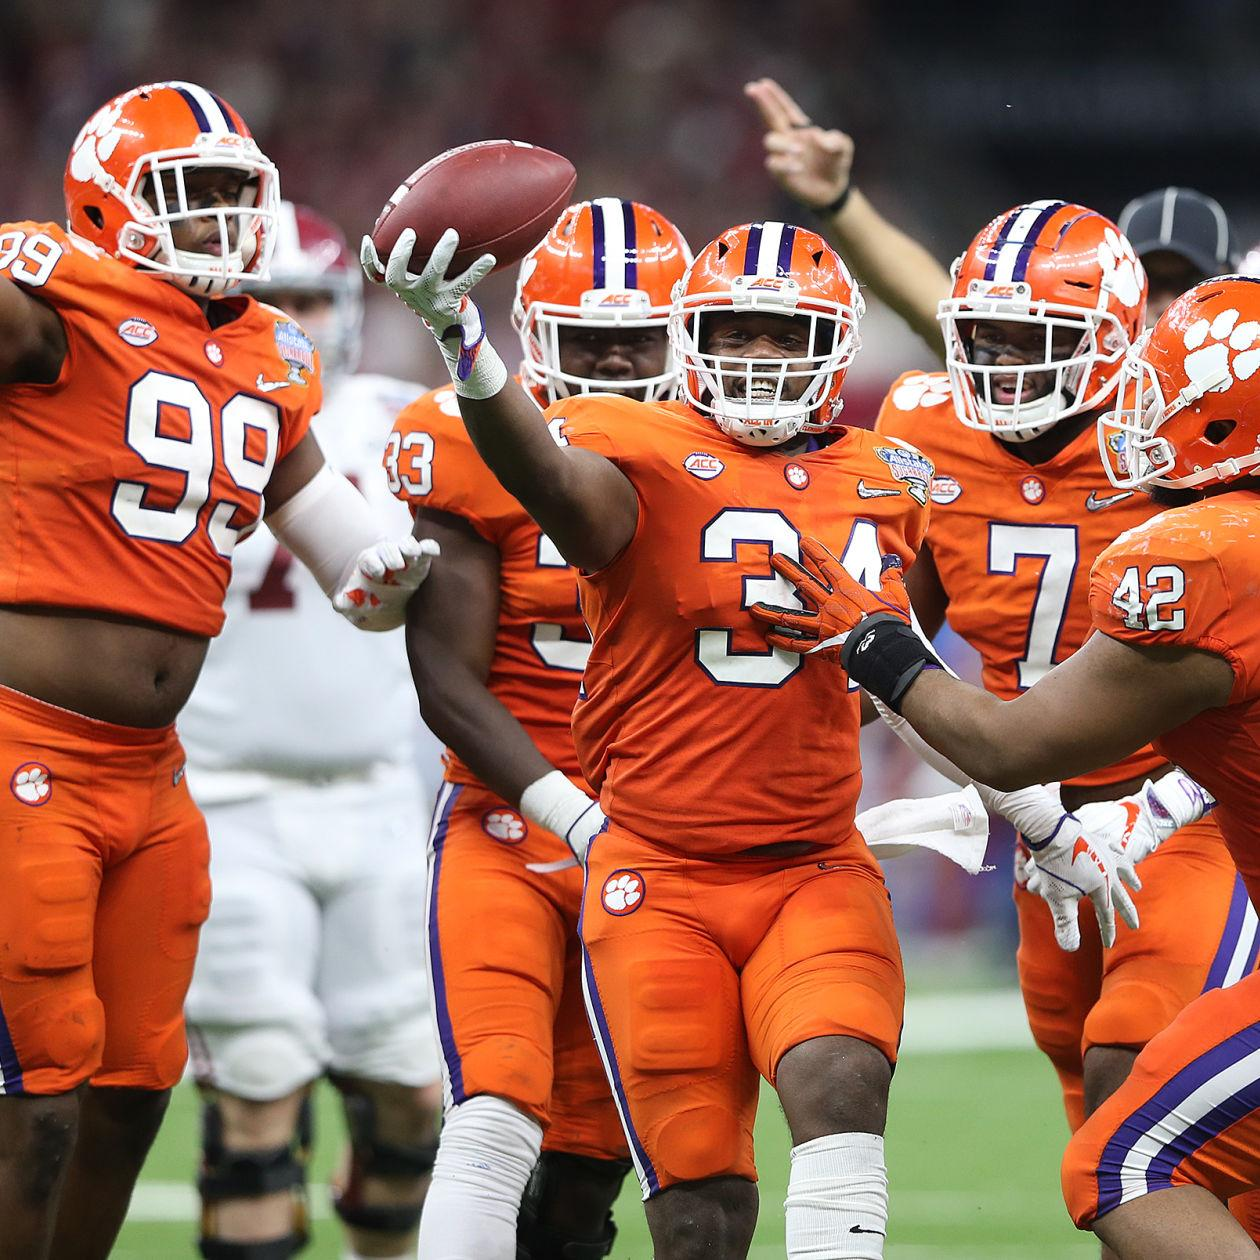 Howard S Rock Iptay The Fridge Get To Know These 10 Things About Clemson Football Lsu Theadvocate Com Named after legendary coach frank howard, the famed howard's rock was brought to clemson from death valley, california in 1919 by the tiger: clemson football